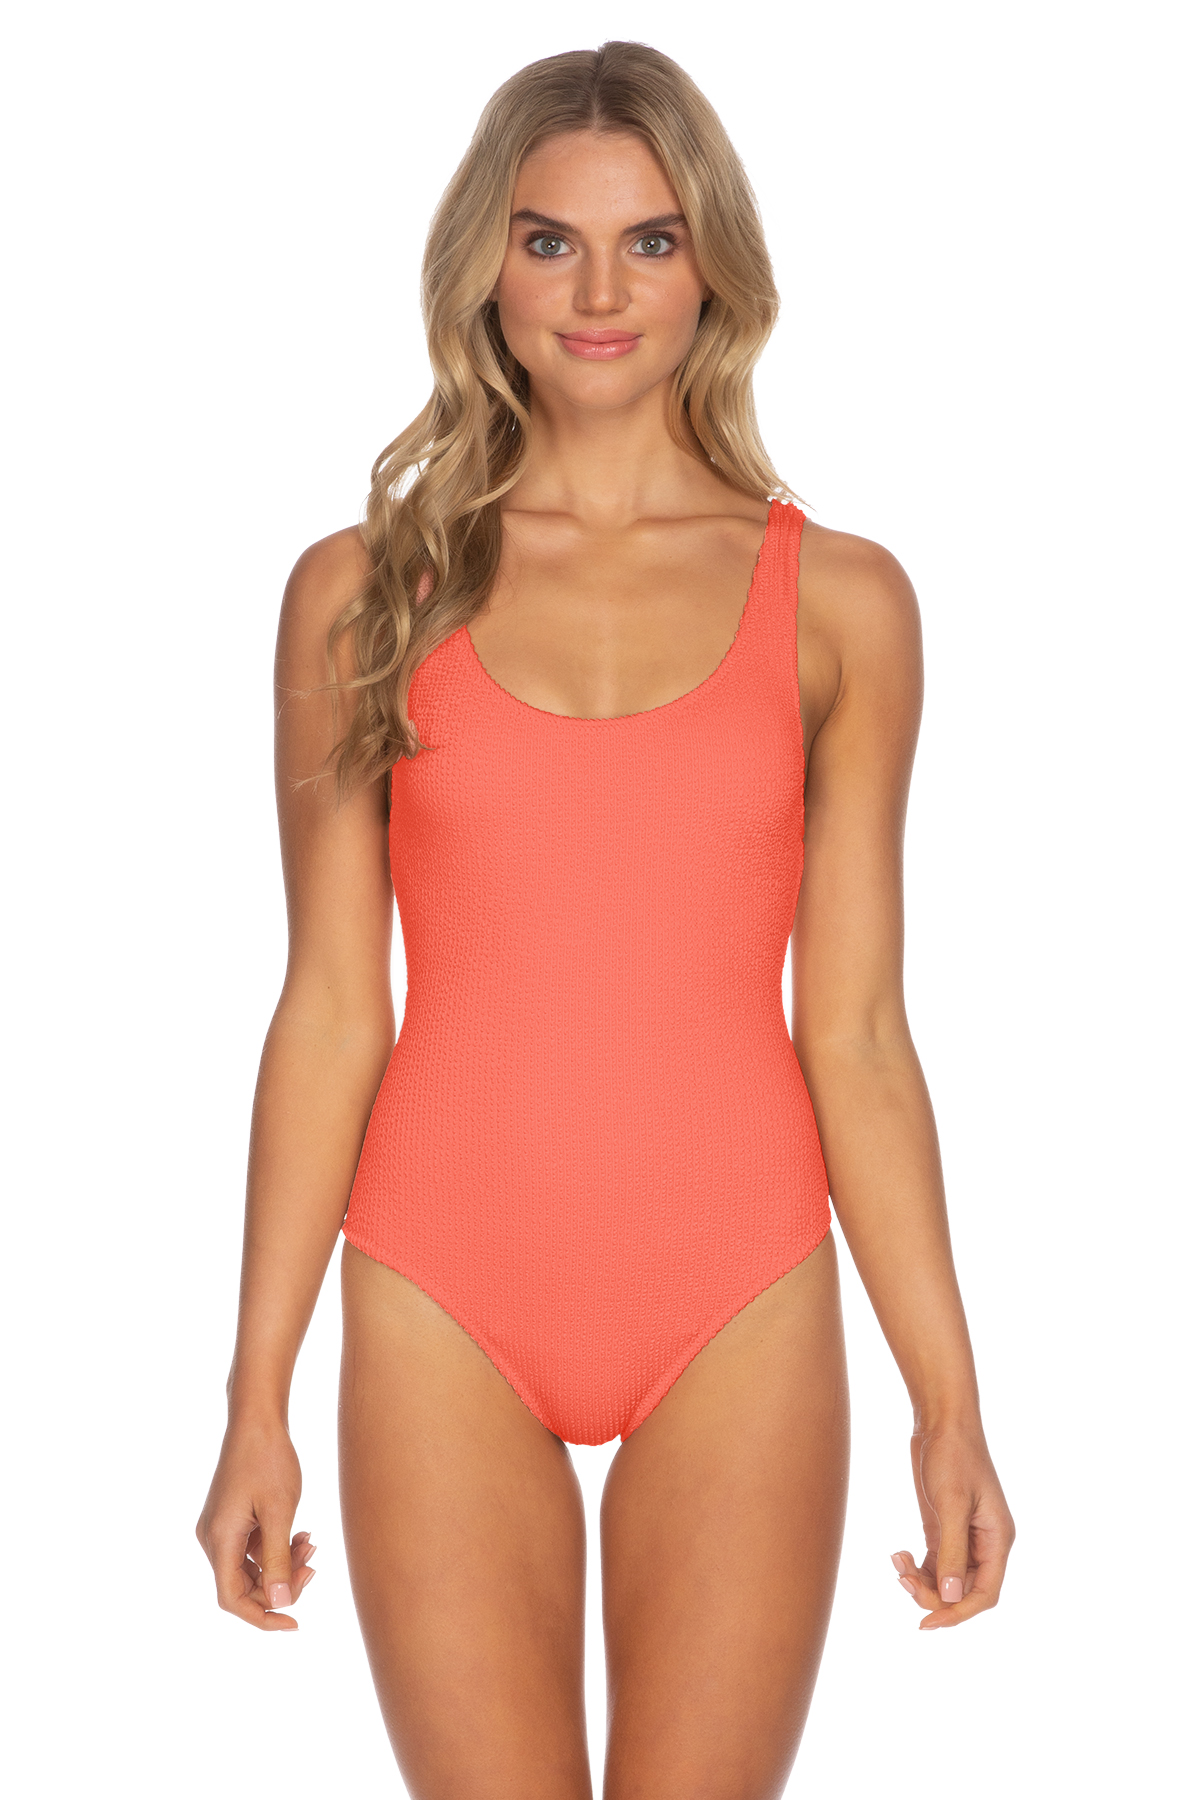 PUCKER UP_4761094_Maillot_Coral_1FRONT.jpg